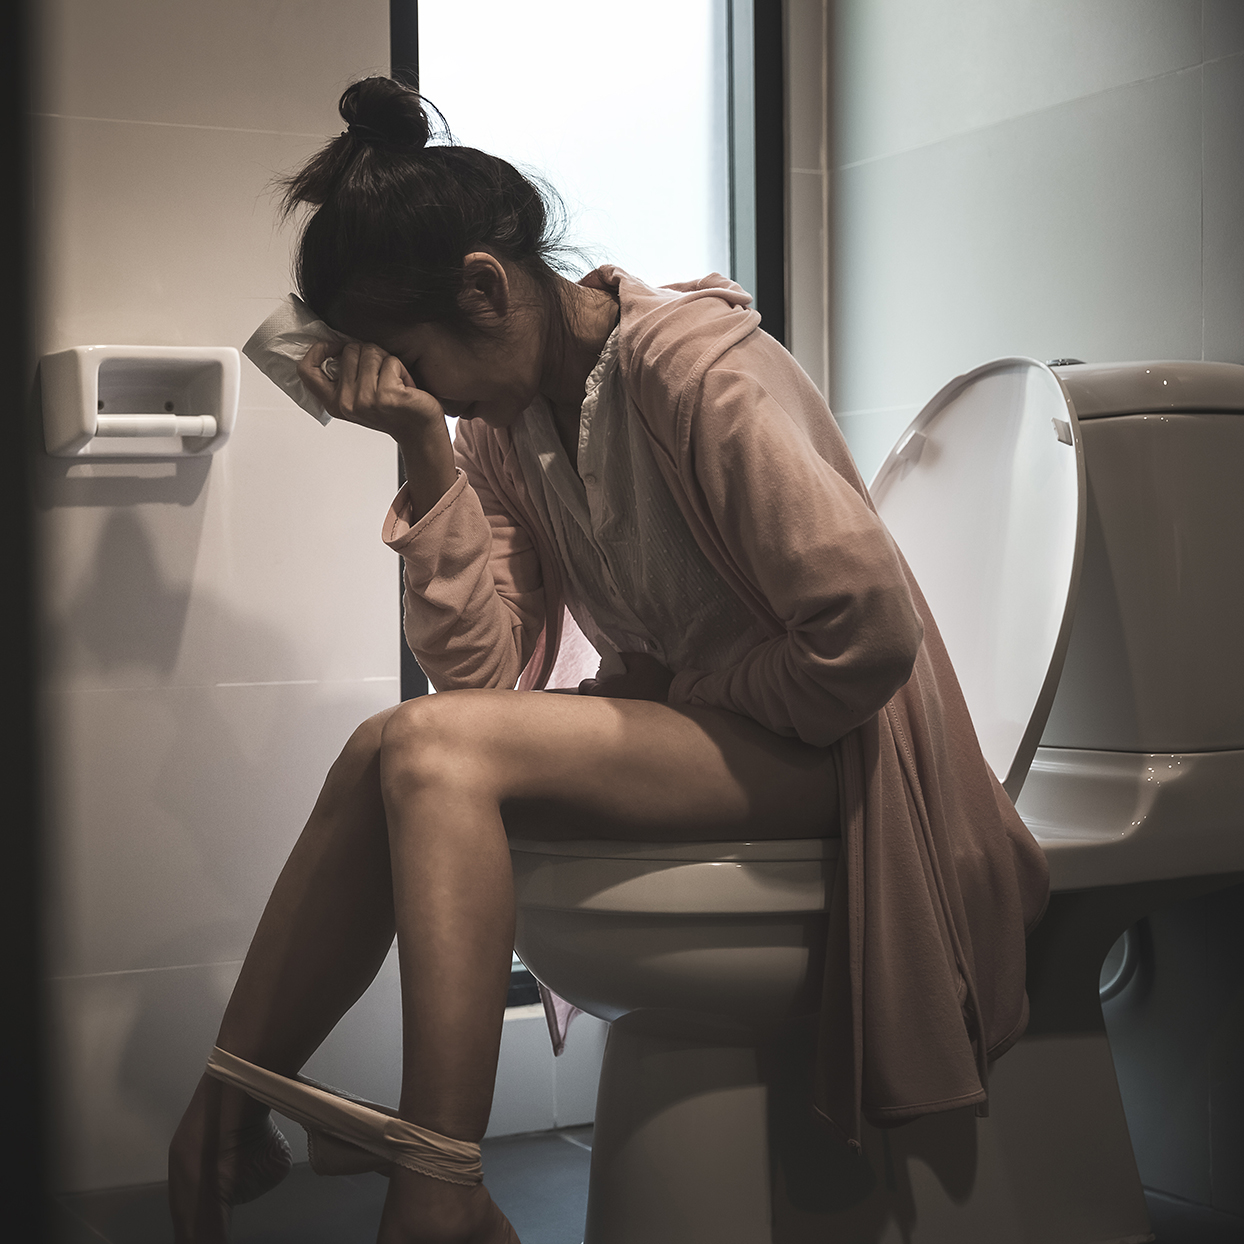 woman sitting on toilet bowl with stress gesture, health concept